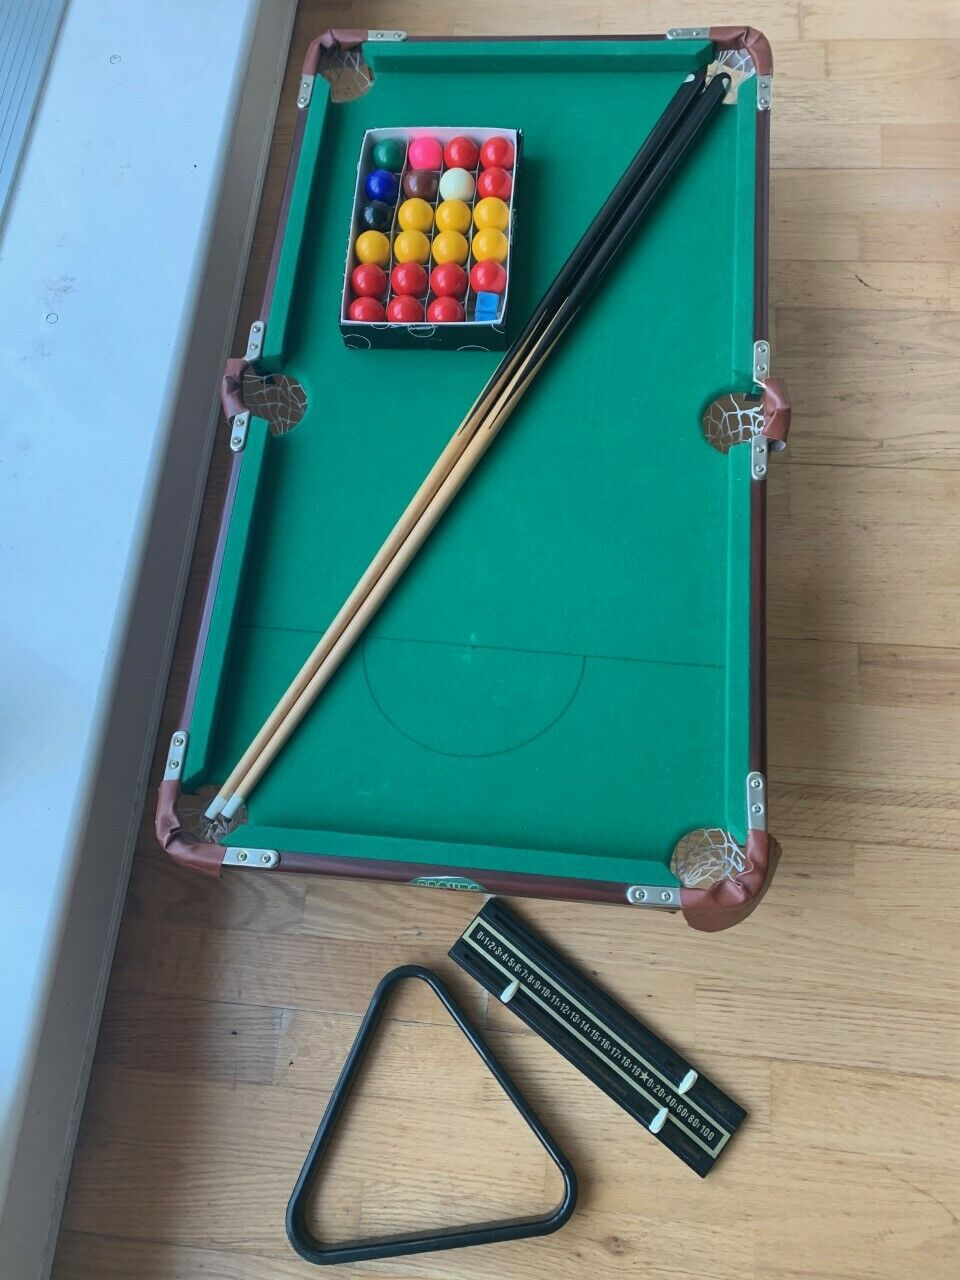 Jaques Mini Pool and Snooker Table 90cm x 50cm with balls, cues, triangle